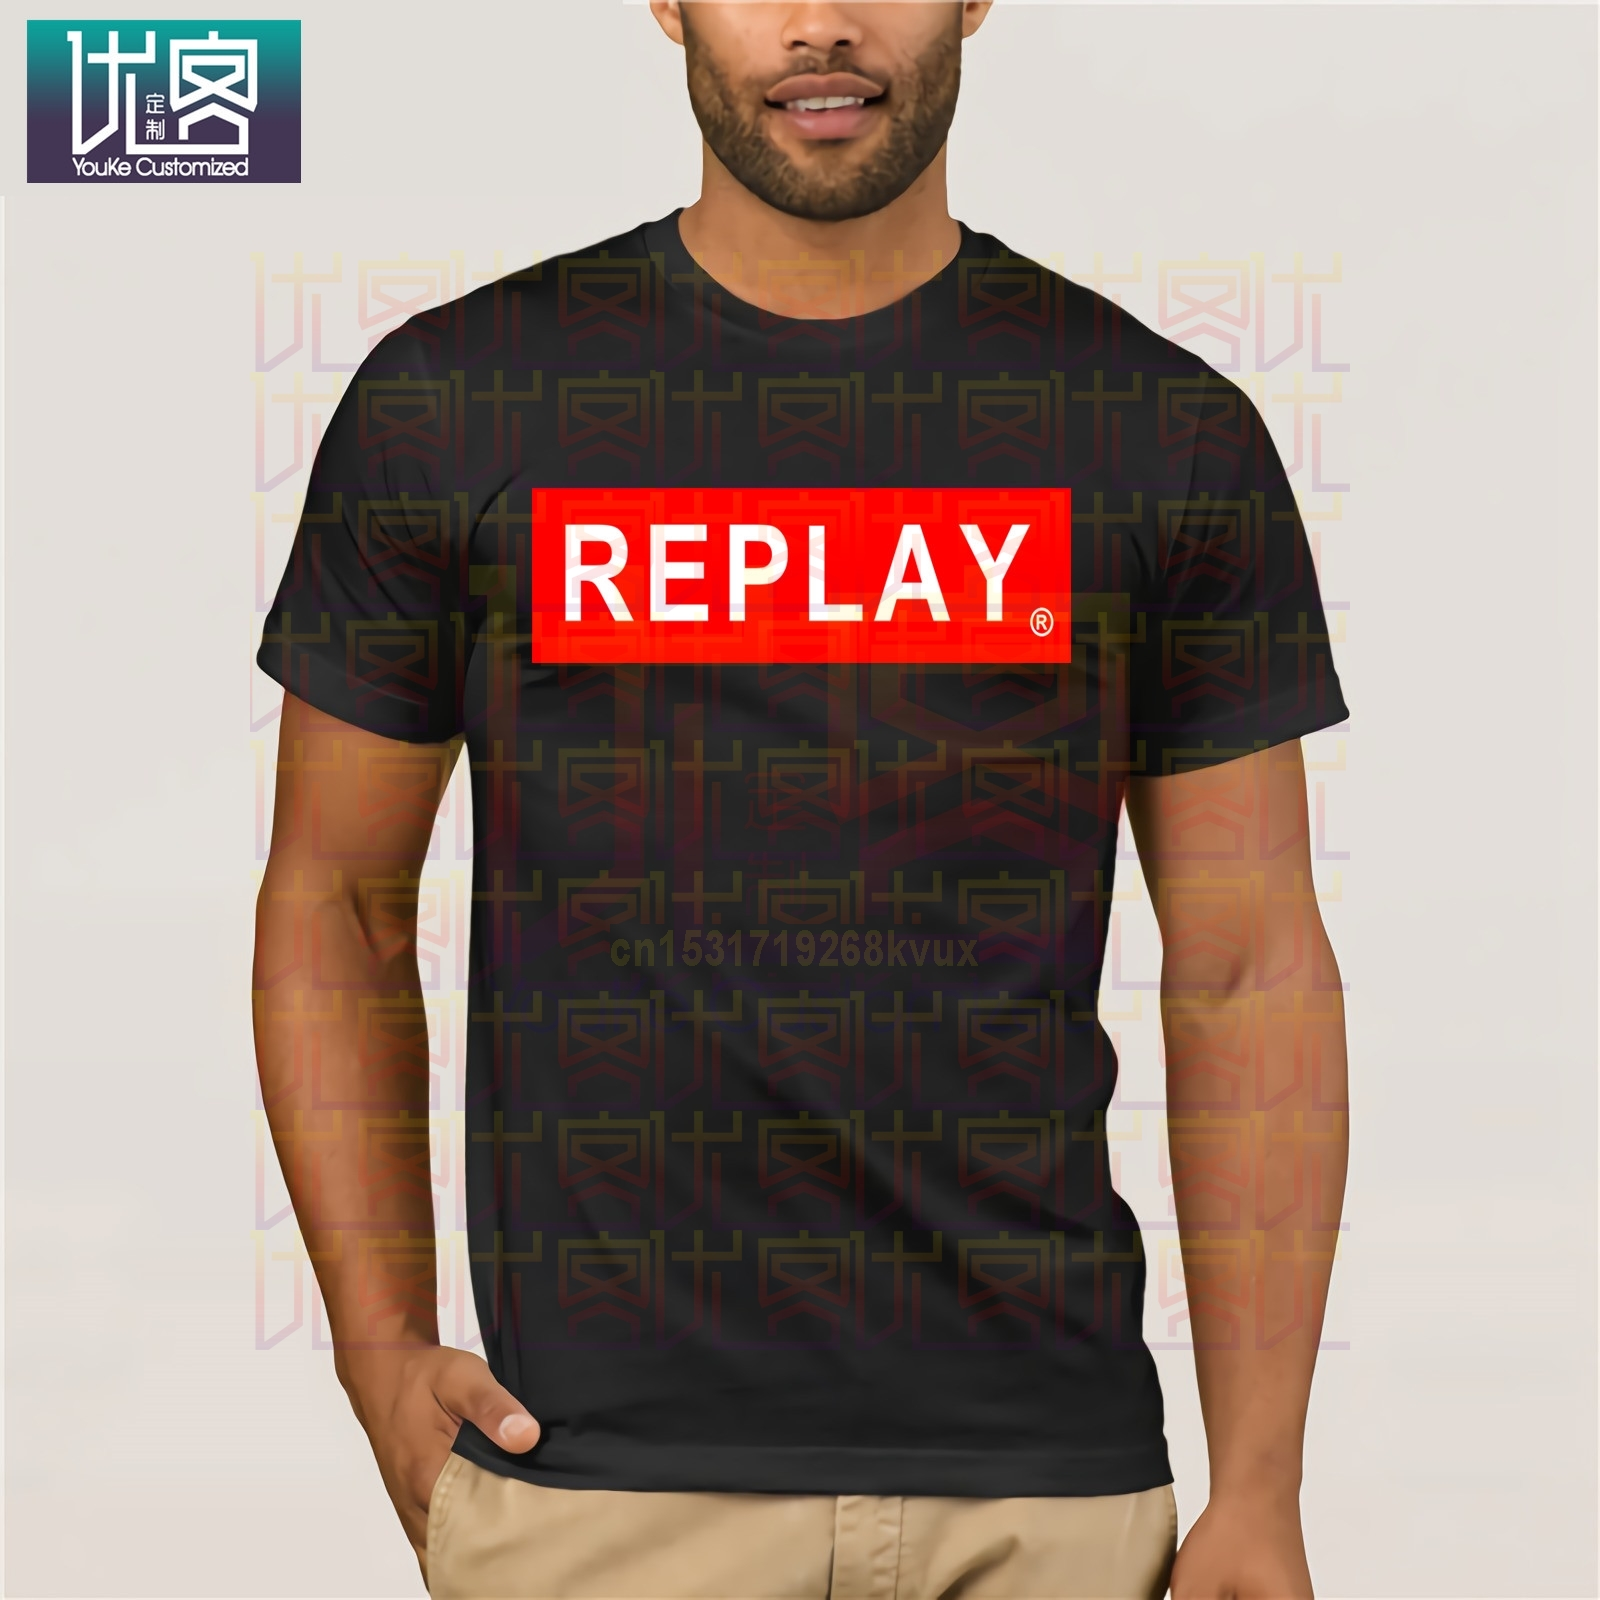 Song REPLAY-  Cotton Tee Shirt Present Amazing Short Sleeve Unique Casual Tees 100% Cotton Clothes Cotton Tee Shirt Present